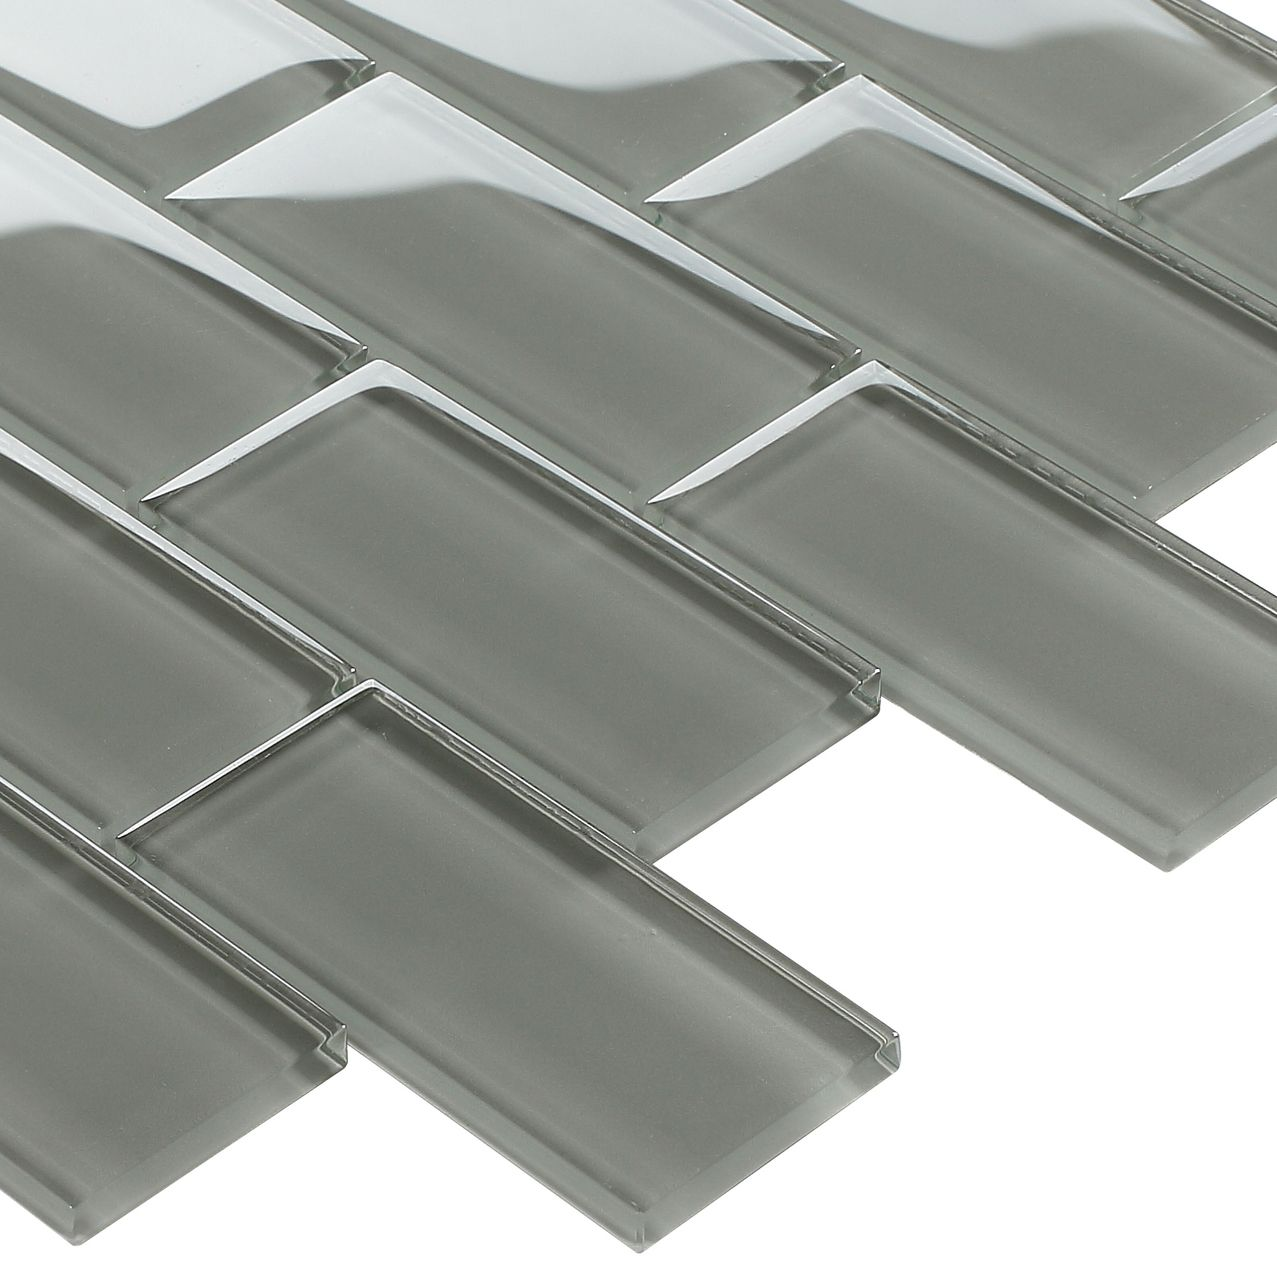 Subway Glass Tile Smoke Grey 2x4 Glass Subway Tile Glass Tile Backsplash